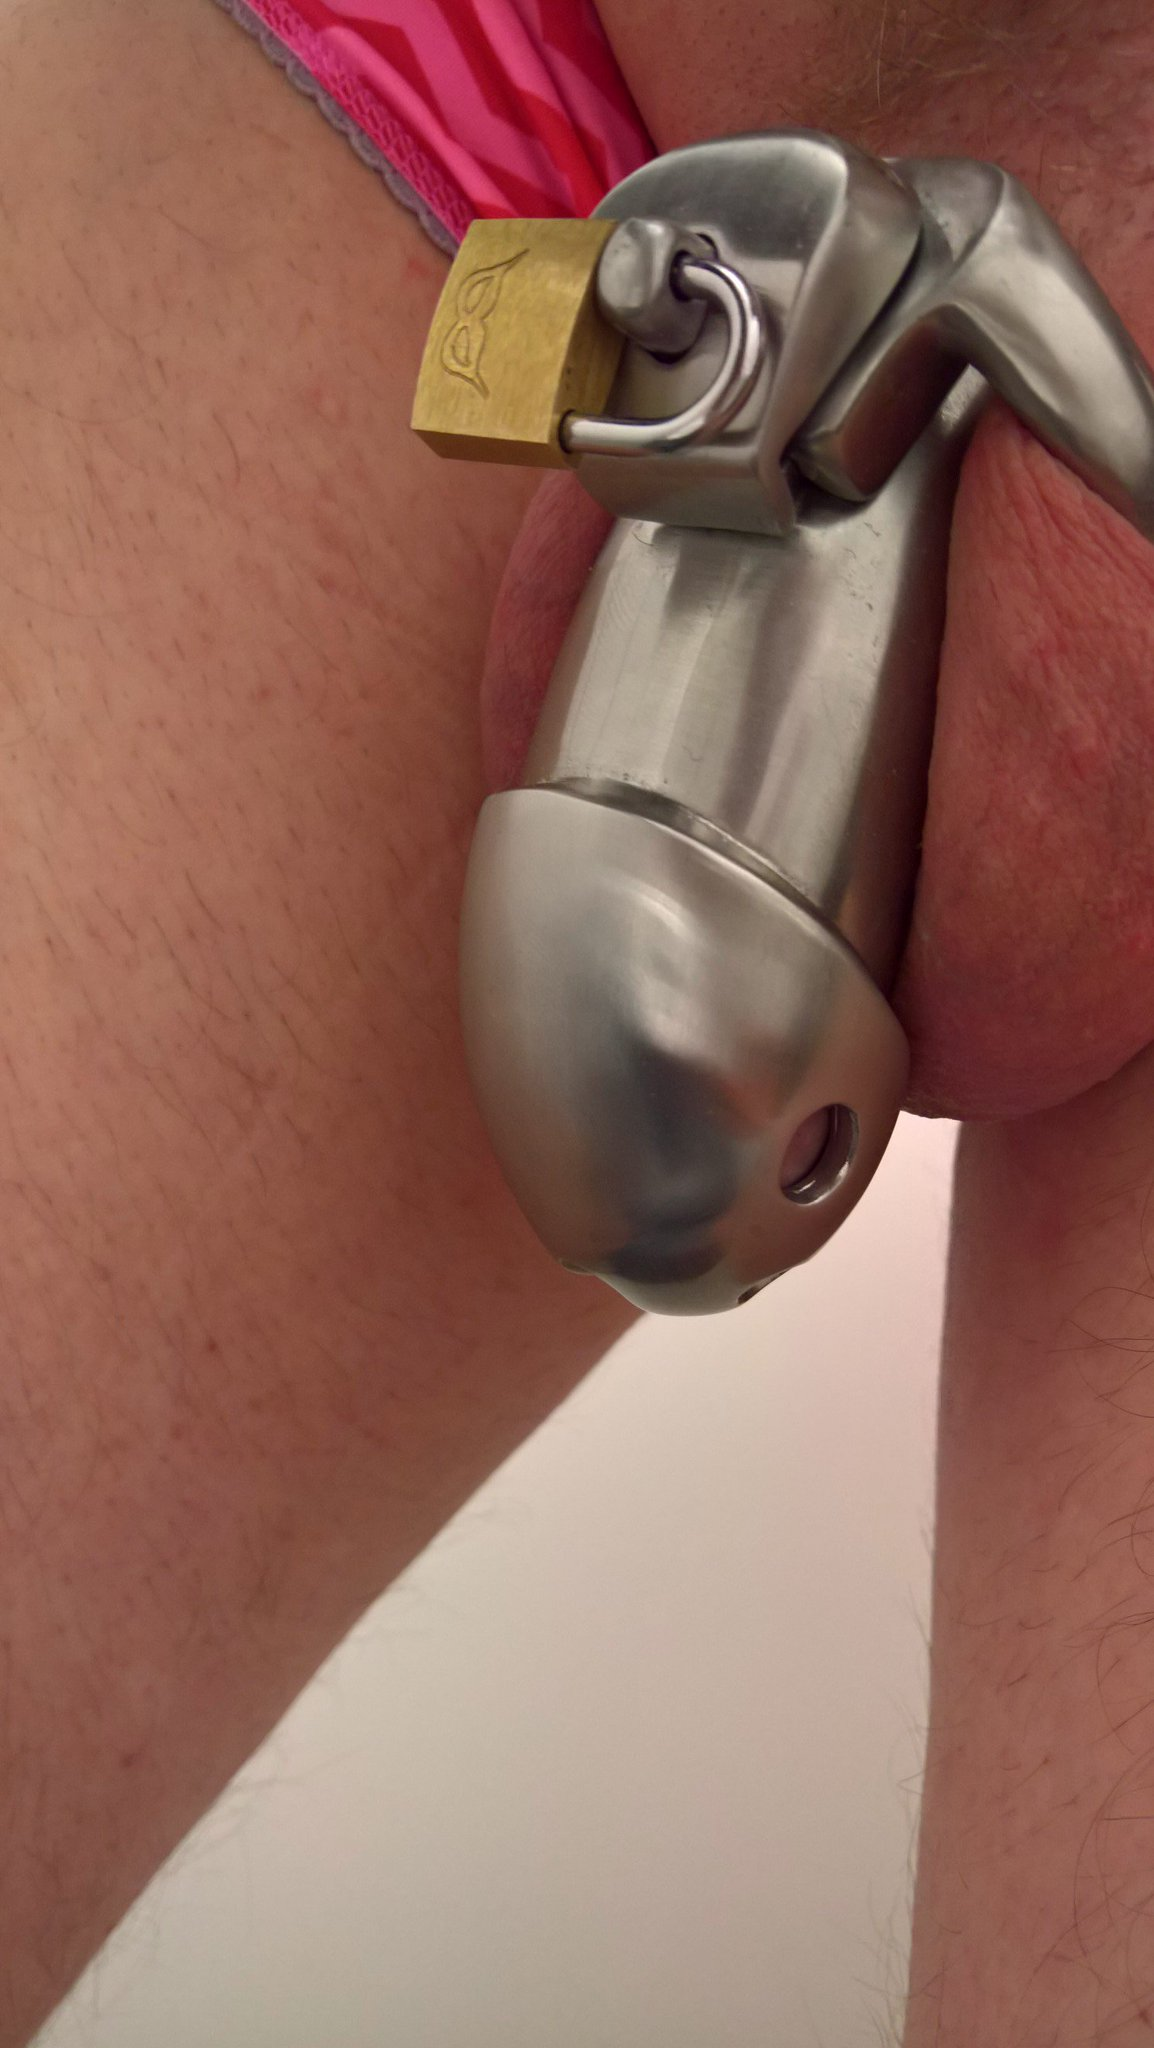 Trying on my new steel chastity cage to work for the first time. #holytrainer #chastity #cuckoldRT if you like it! https://t.co/m56fYLeIFj